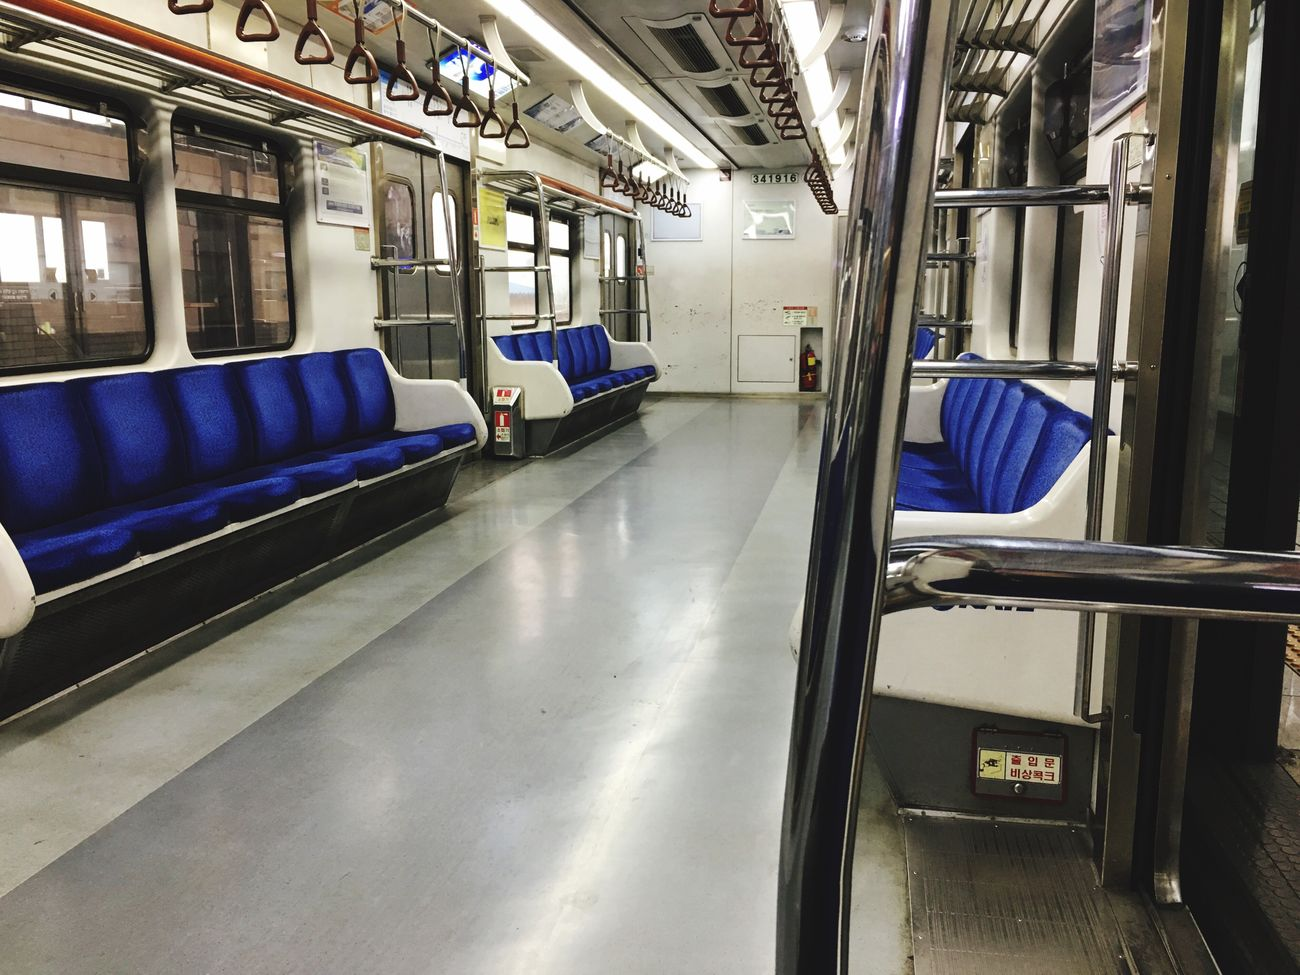 Transportation Window Train - Vehicle Public Transportation Mode Of Transport Indoors  Subway Train Vehicle Interior Passenger Train Rail Transportation Vehicle Seat Commuter Train Train Interior No People Day